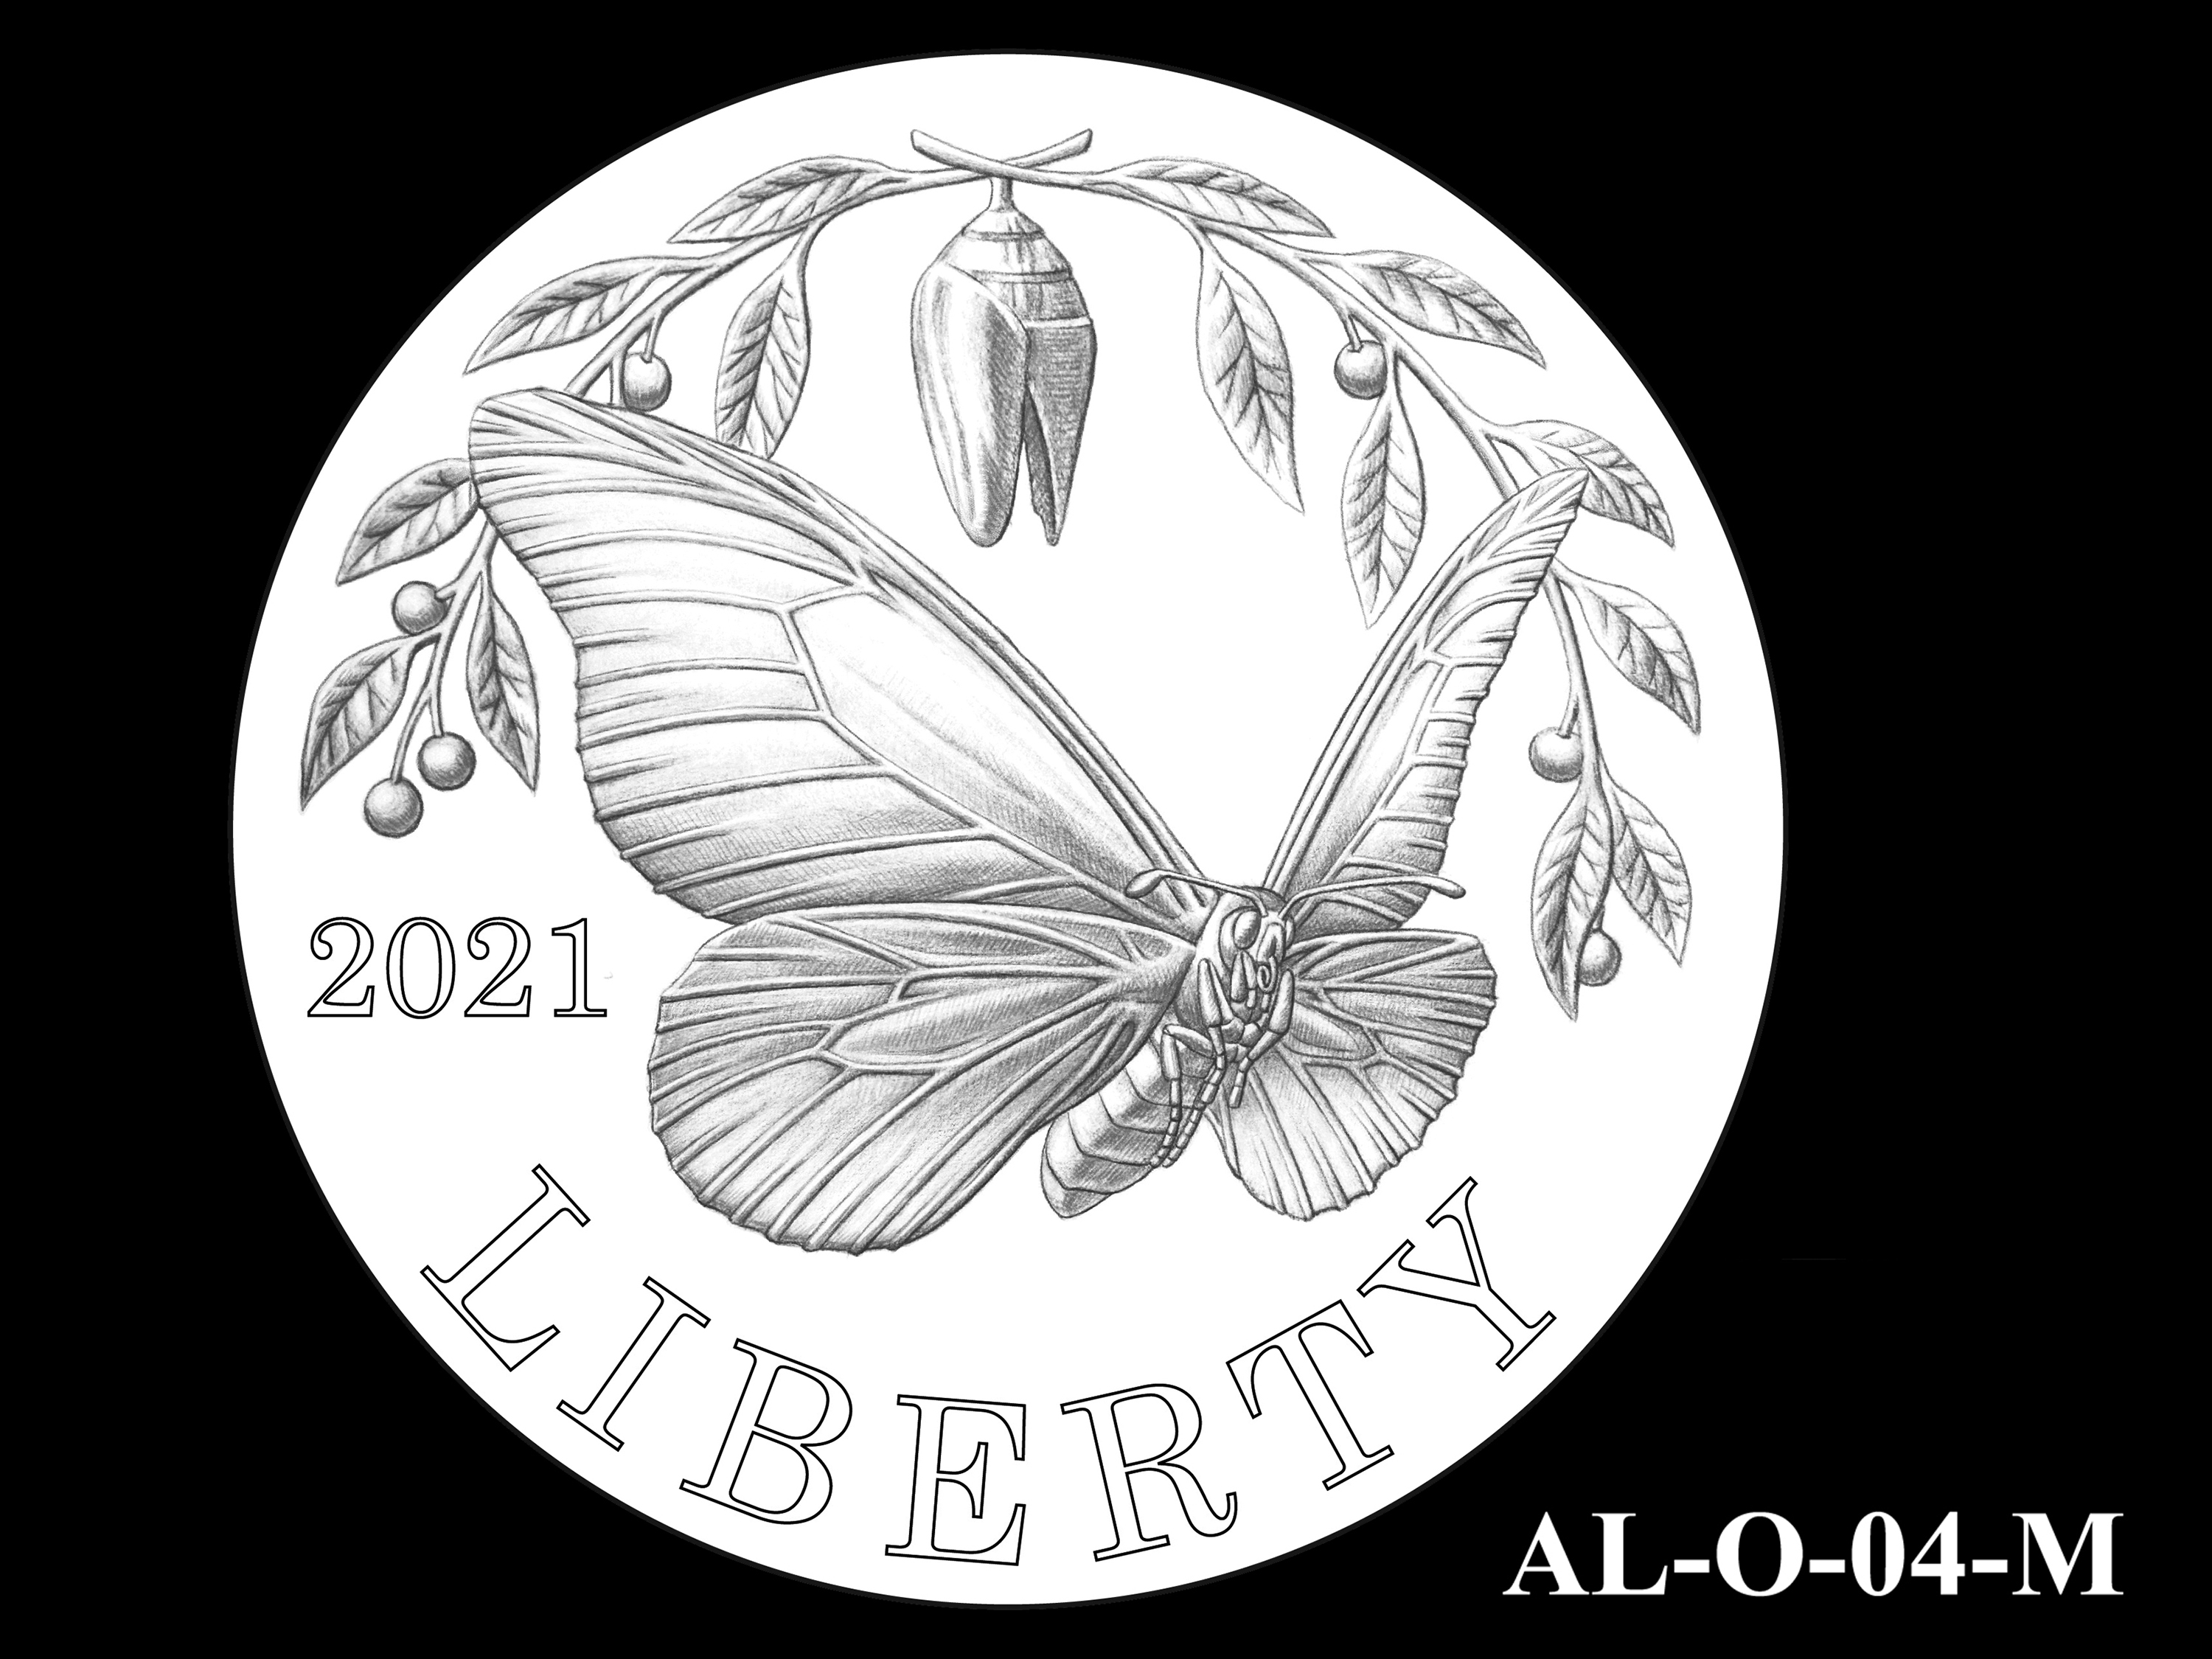 AL-O-04-M -- 2021 American Liberty Gold Coin and Silver Medal Program - Obverse